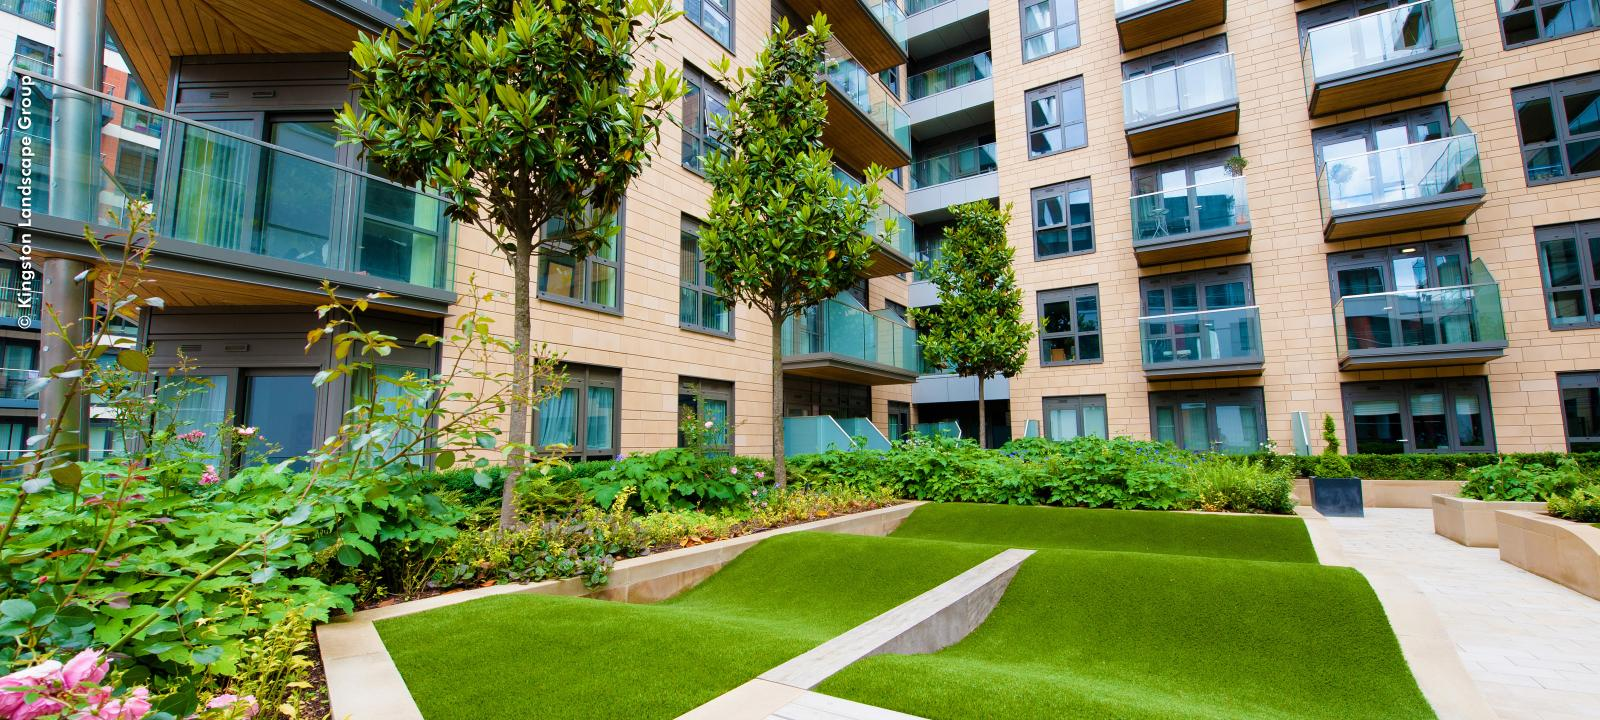 Lawn, small trees and plant beds surrounded by apartment blocks